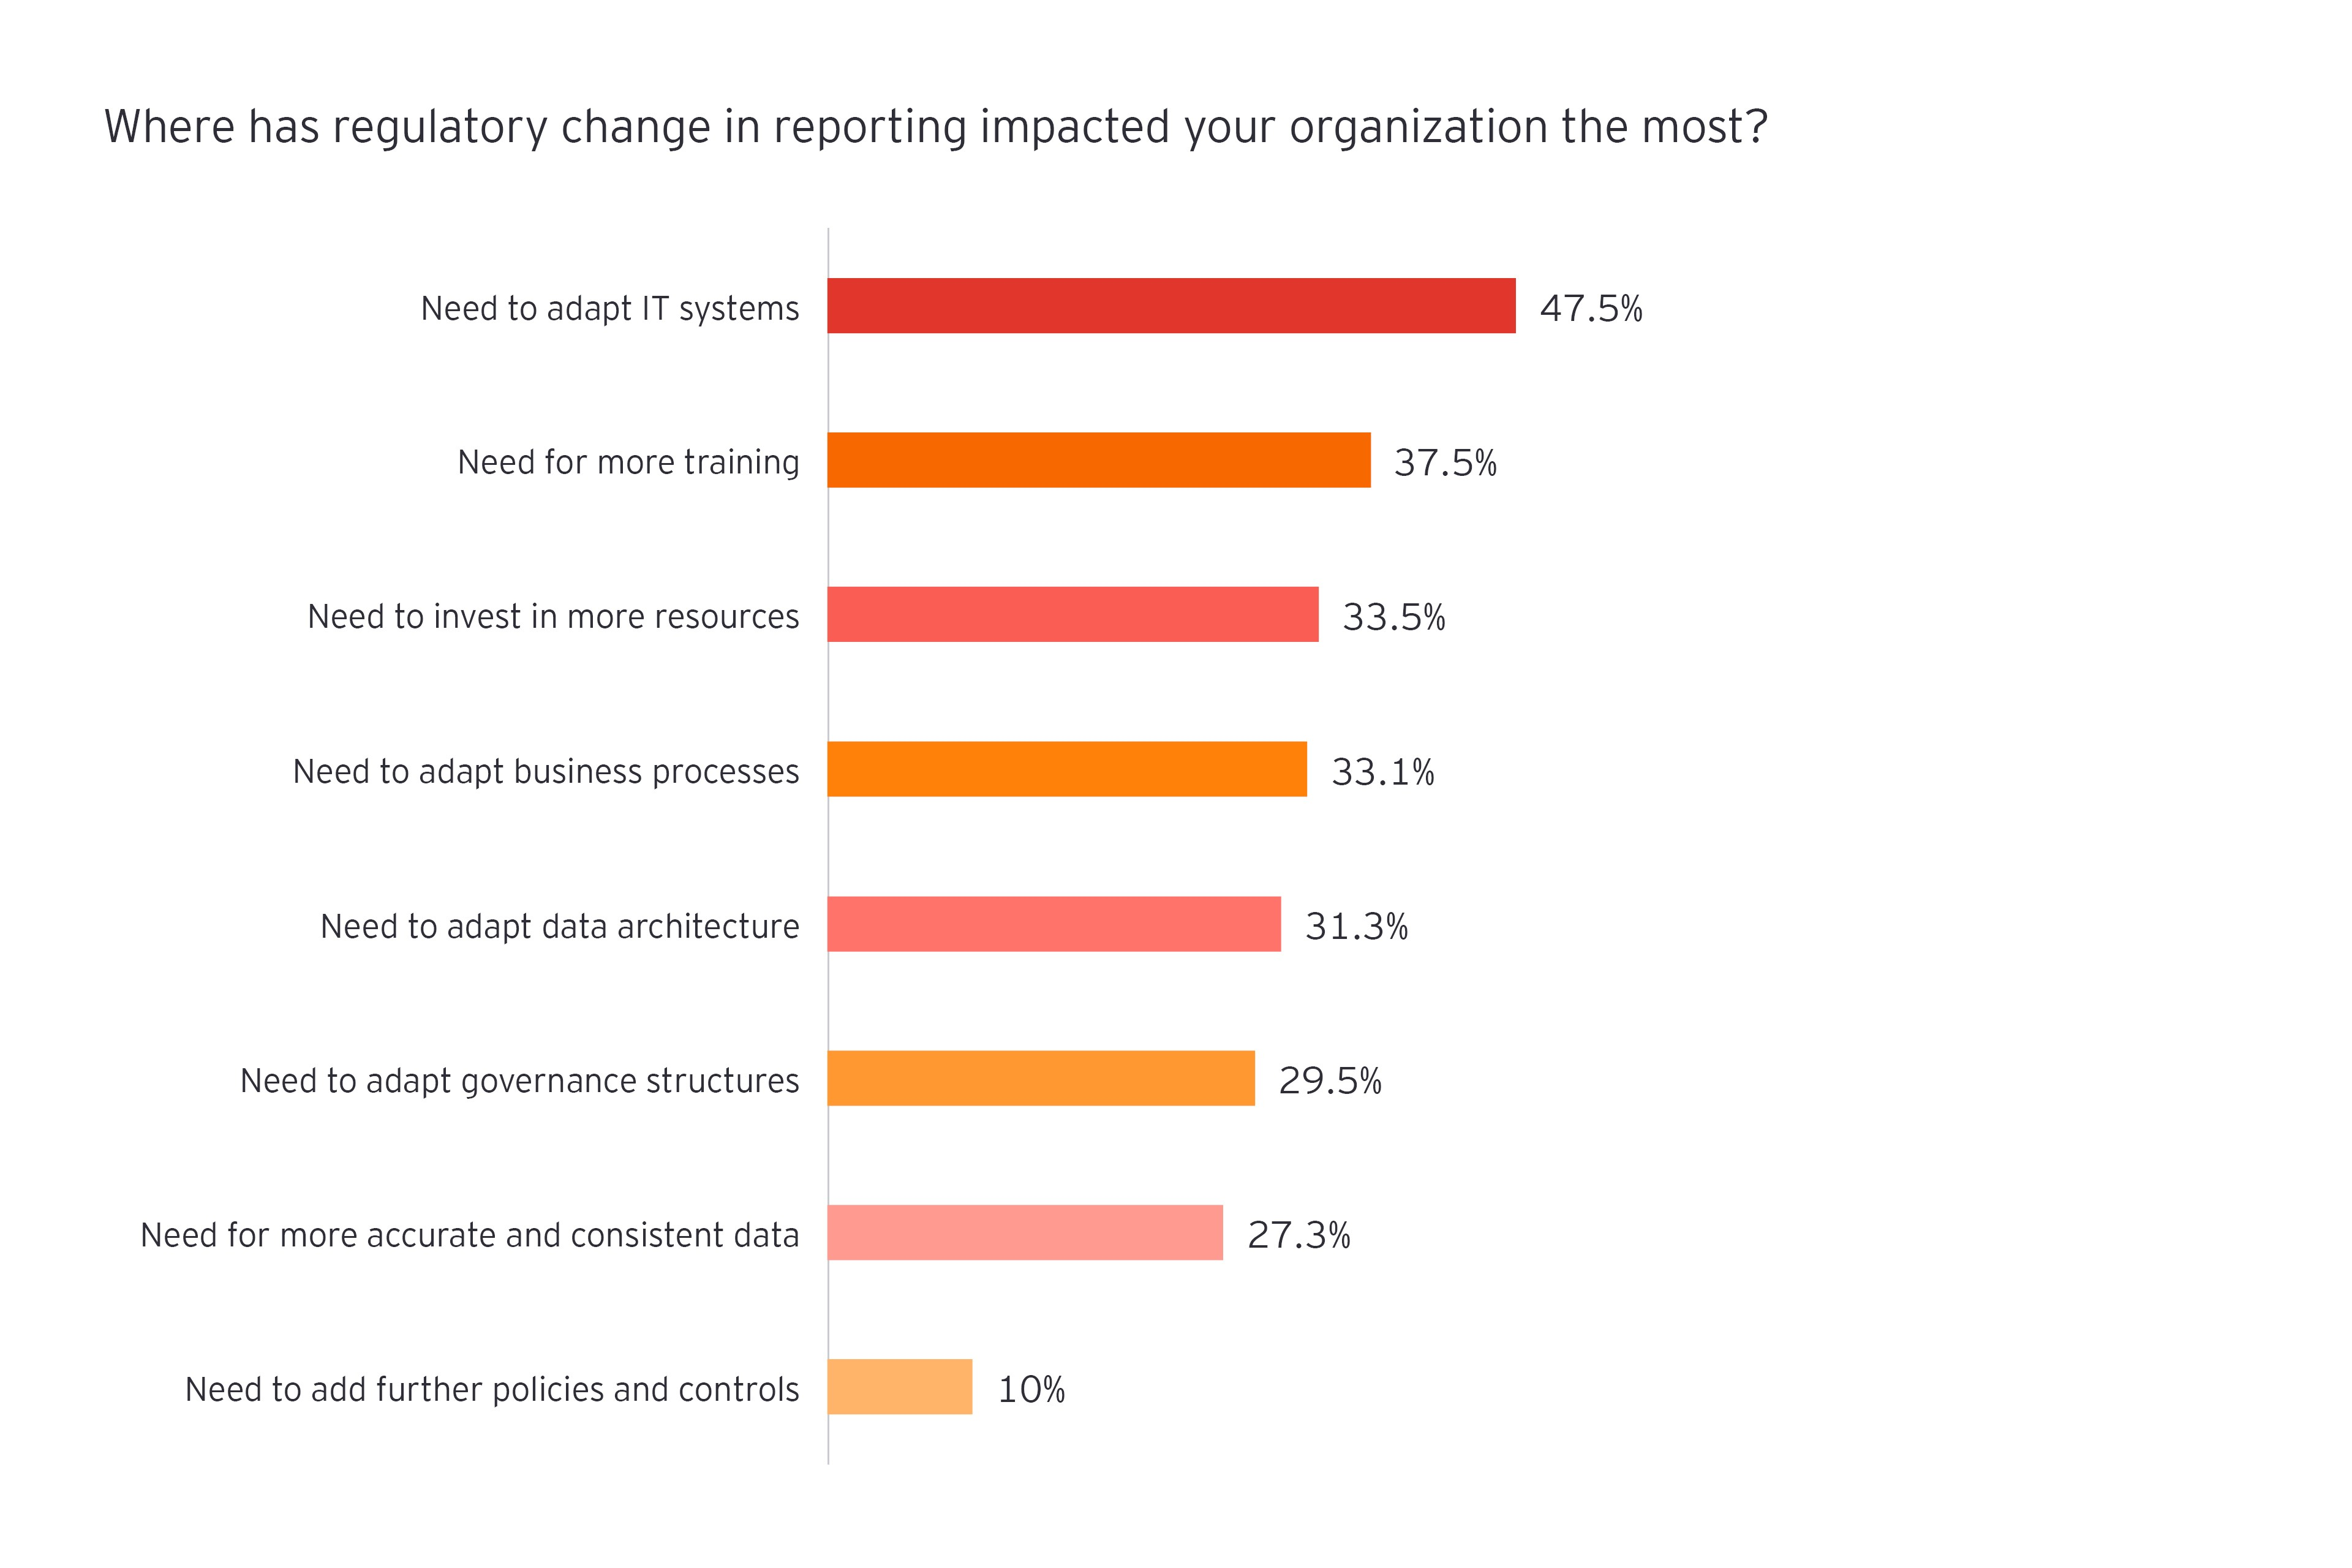 Where has regulatory change in reporting impacted your organization the most?